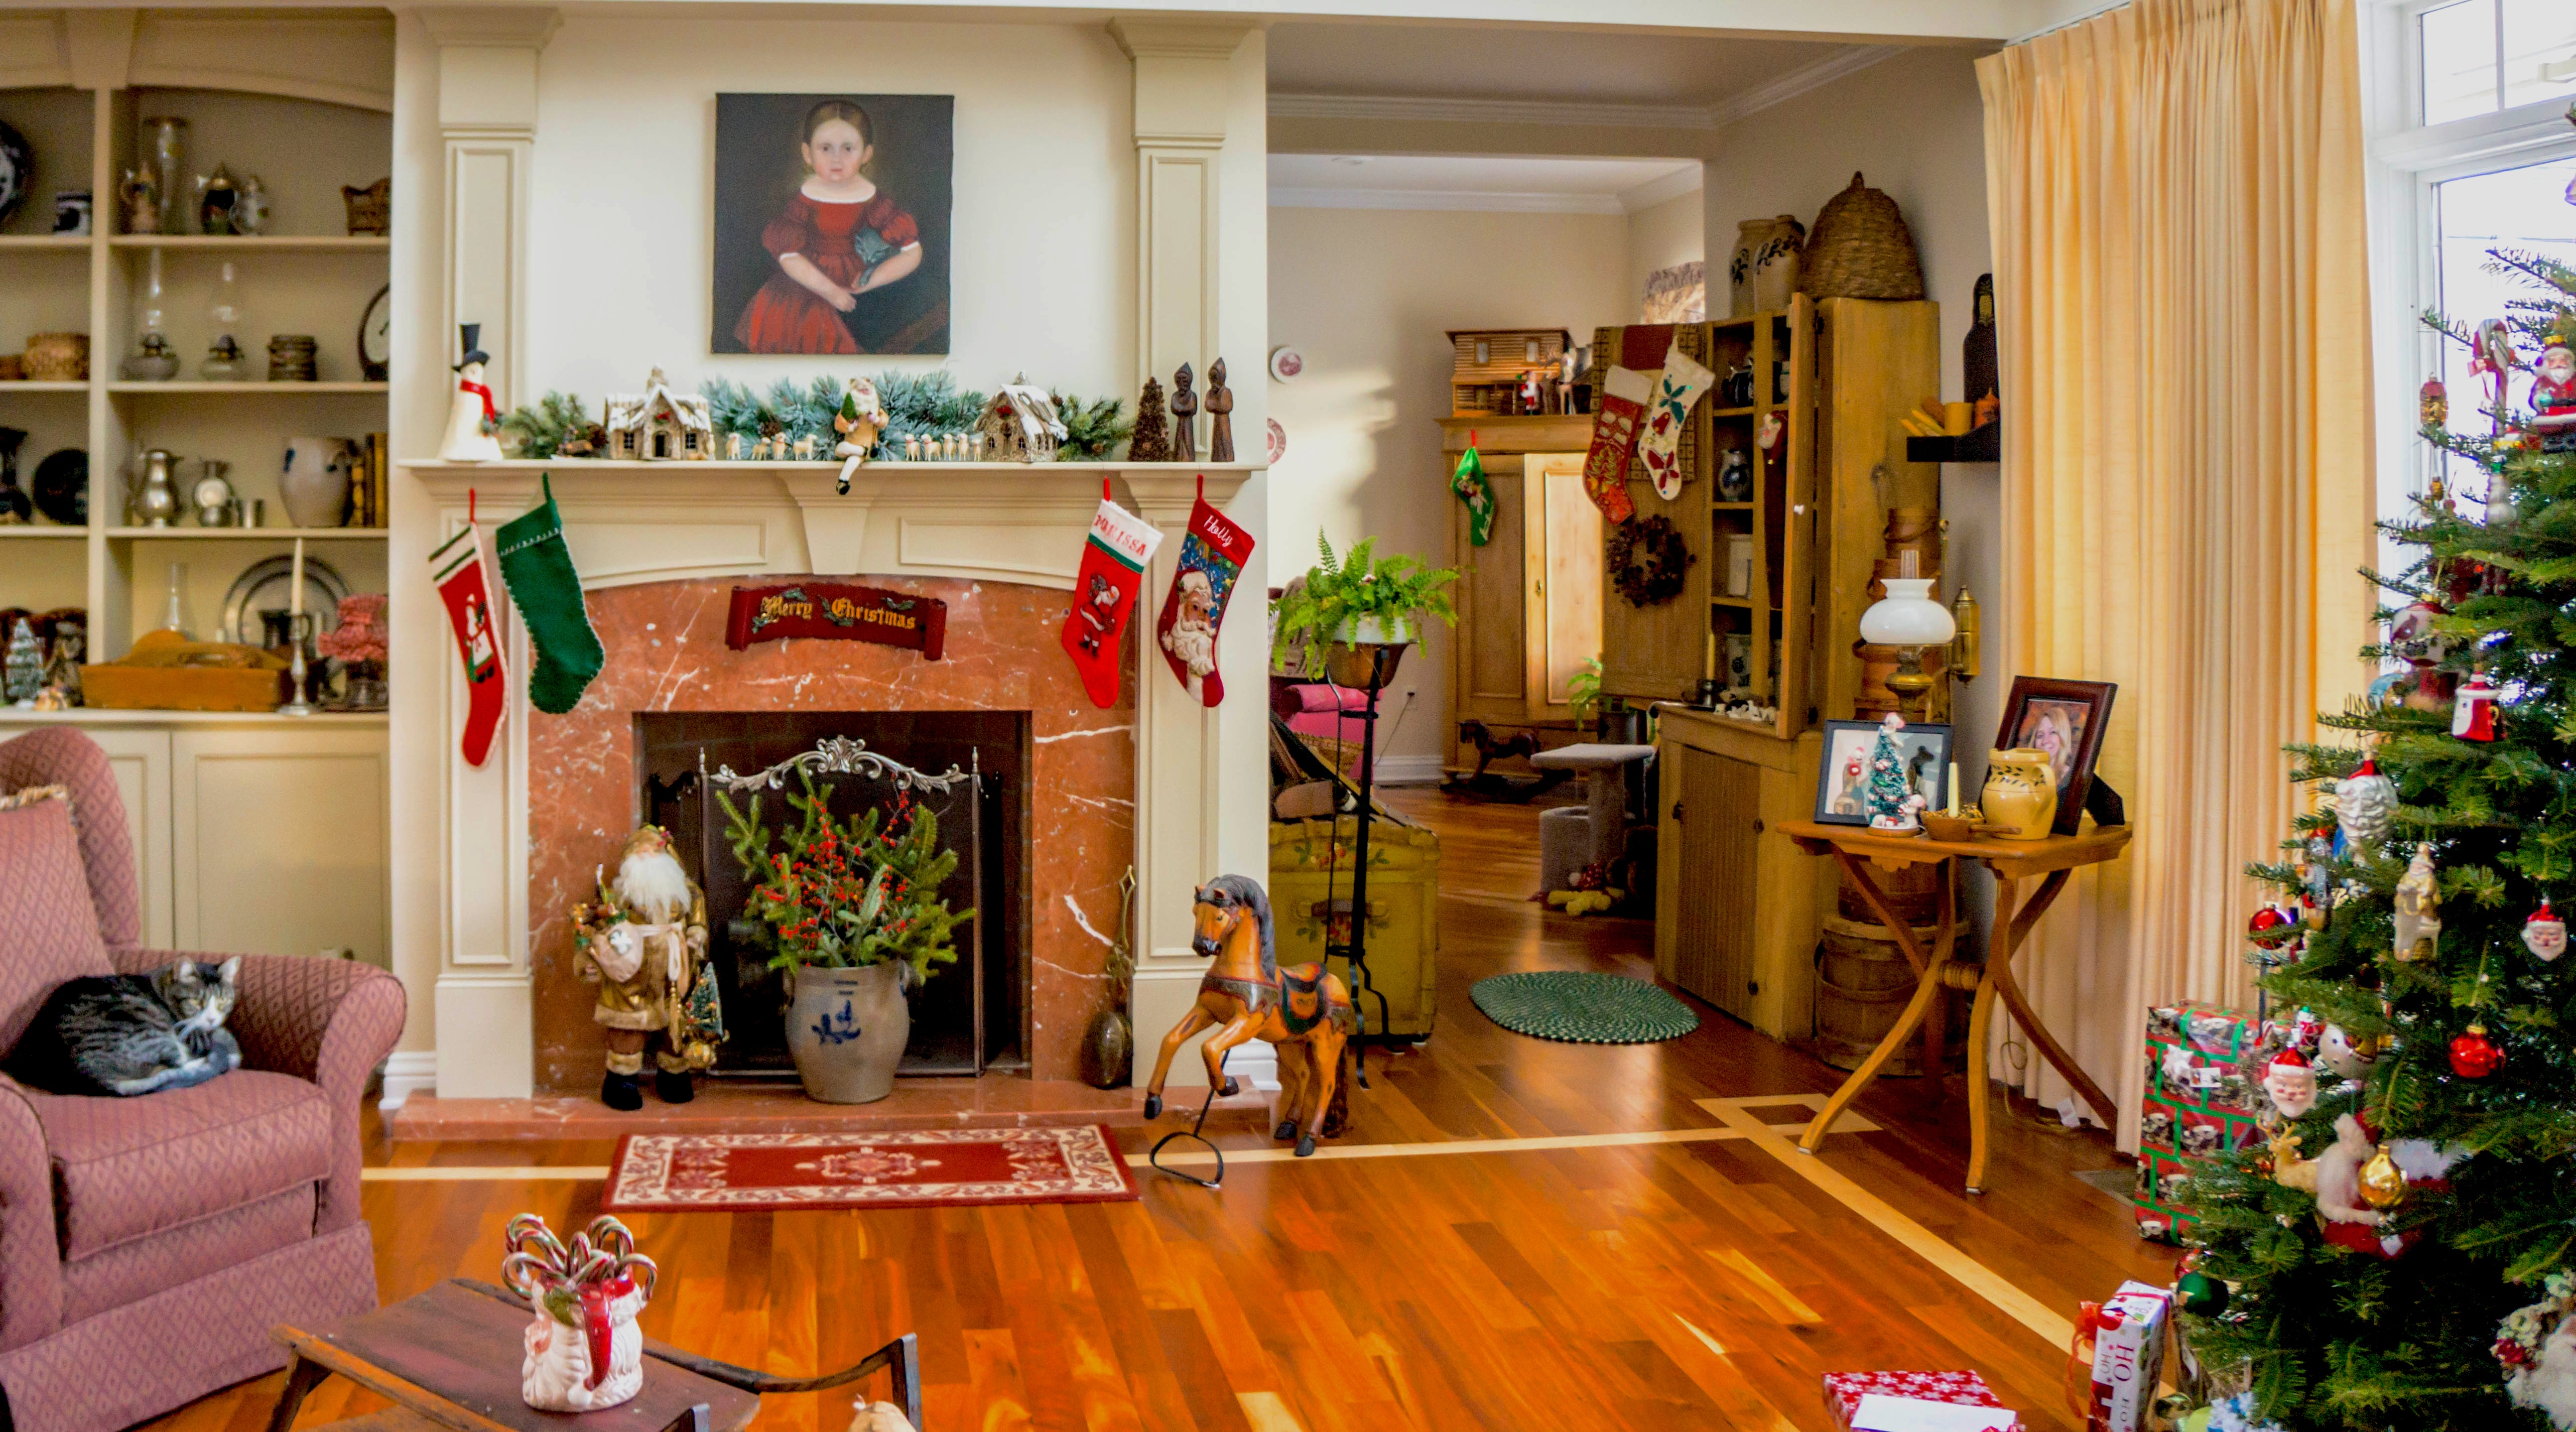 living area decorated with many holiday decorations